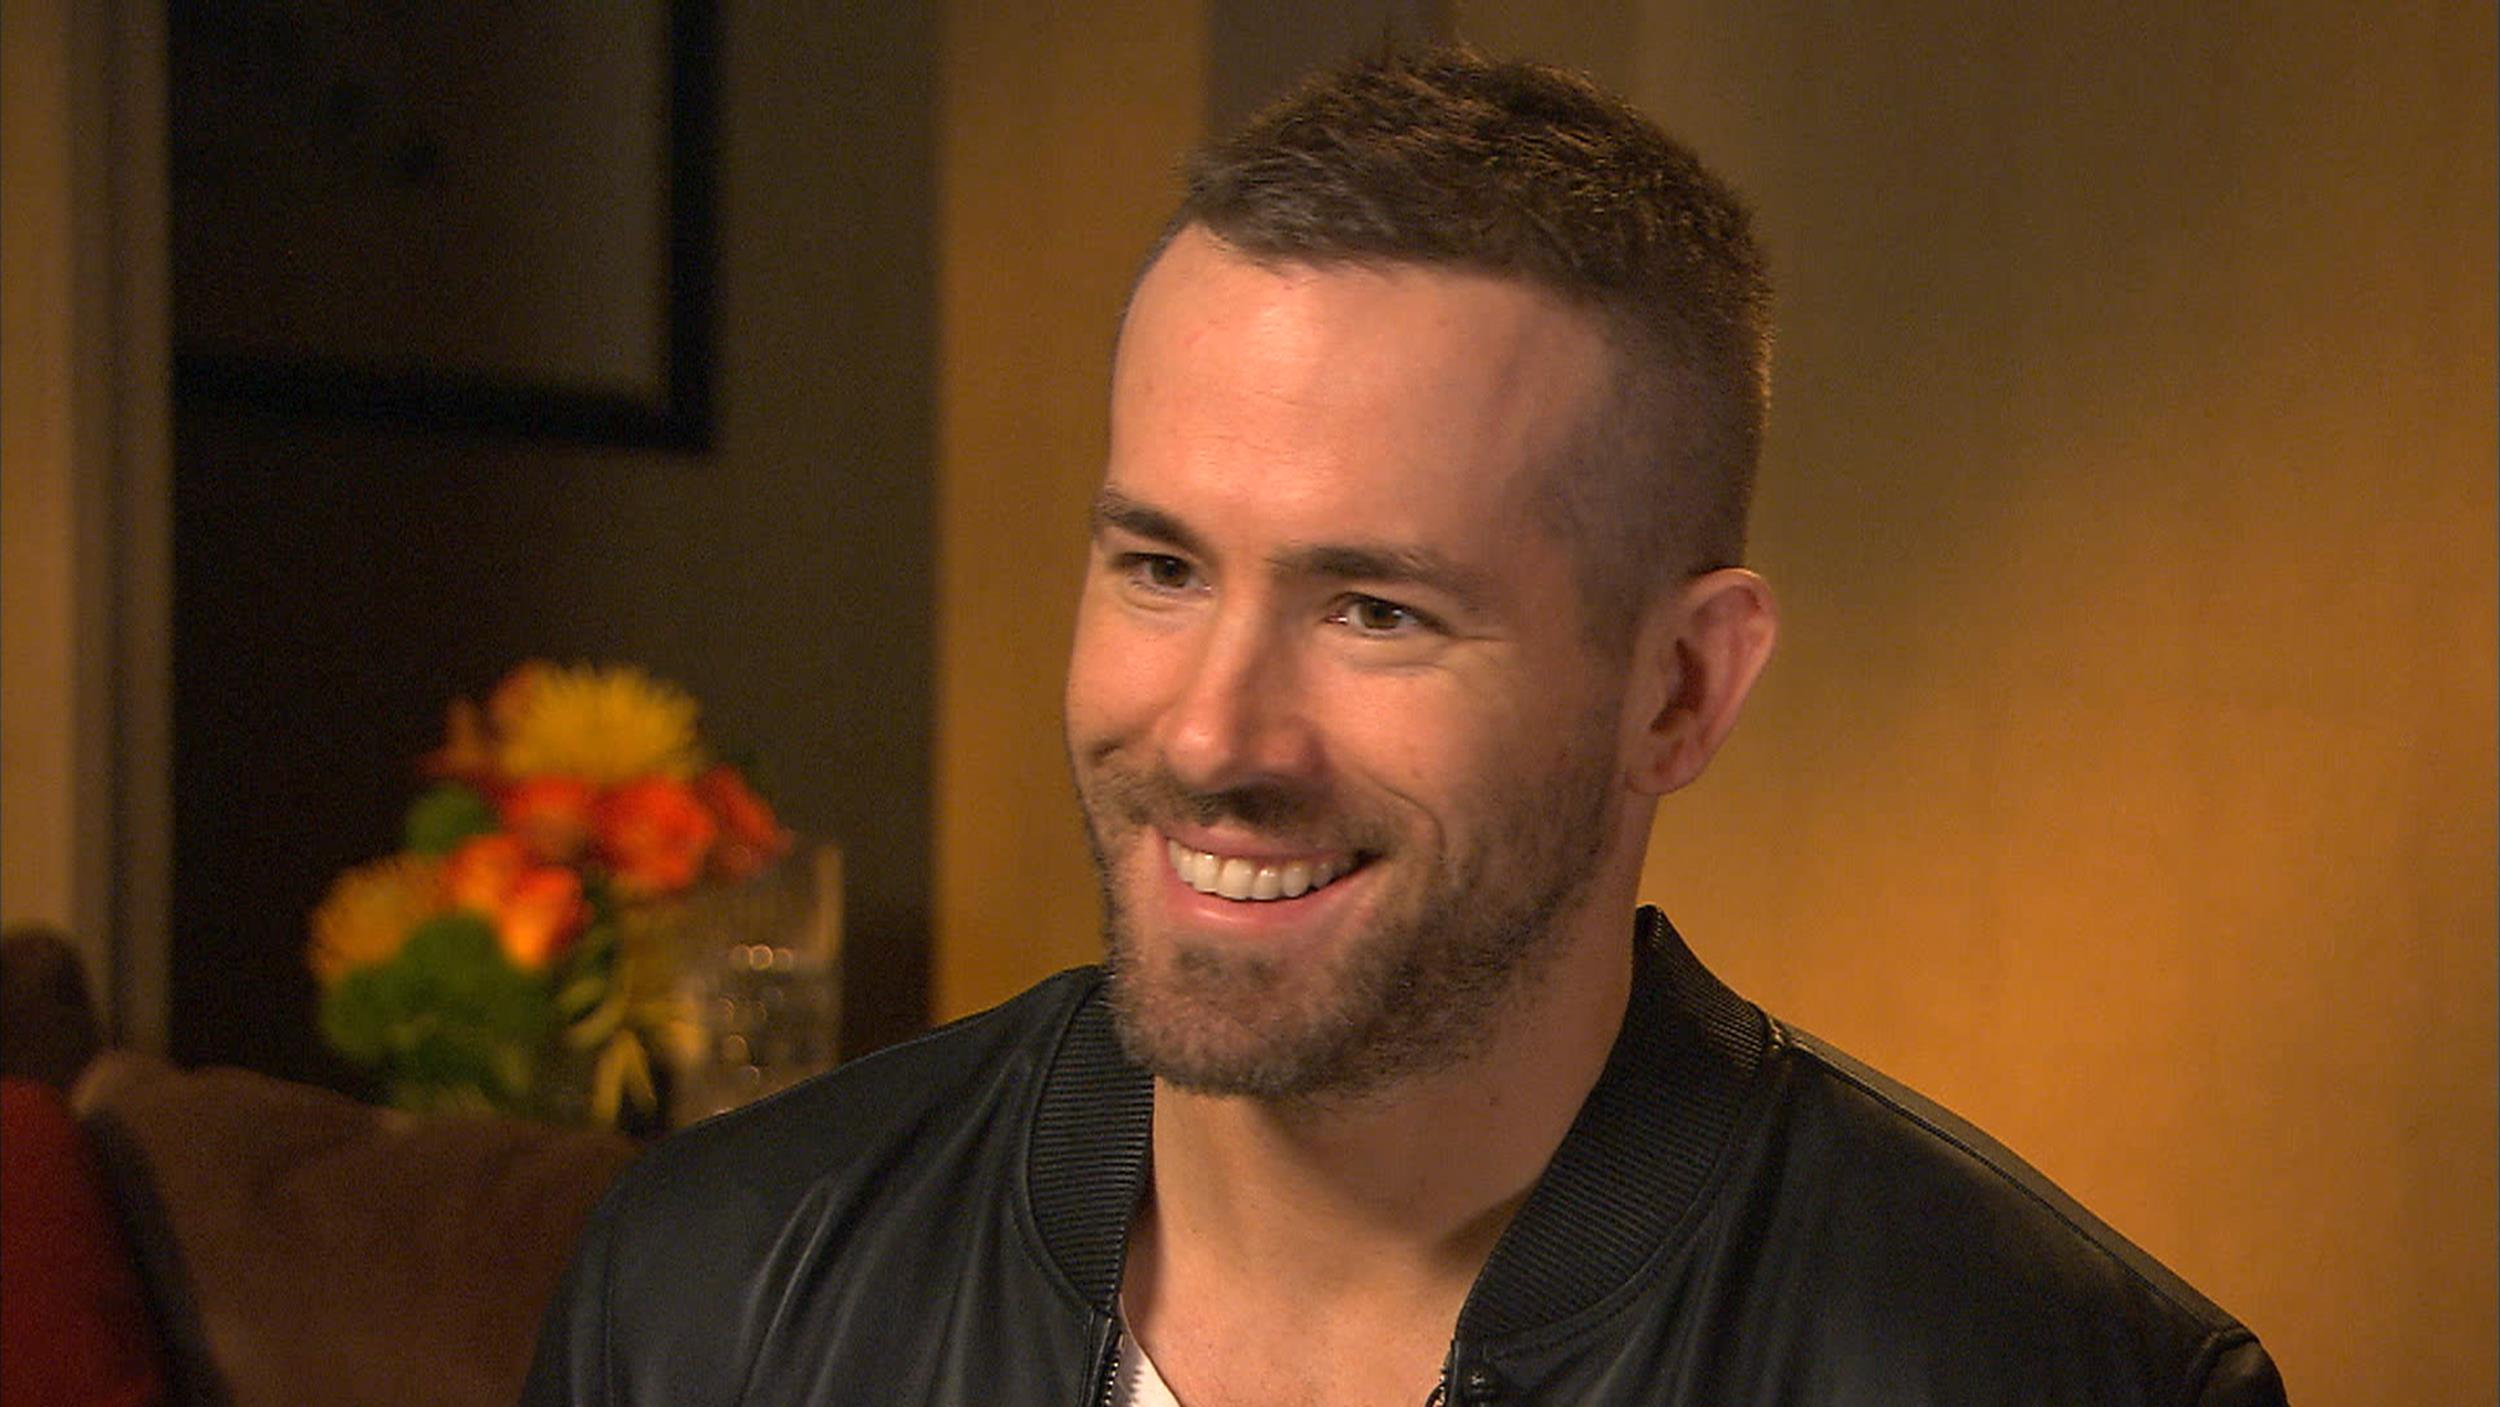 ... latest to join the fan-wagon is the 'Deadpool' star Ryan Reynolds Ryan Reynolds